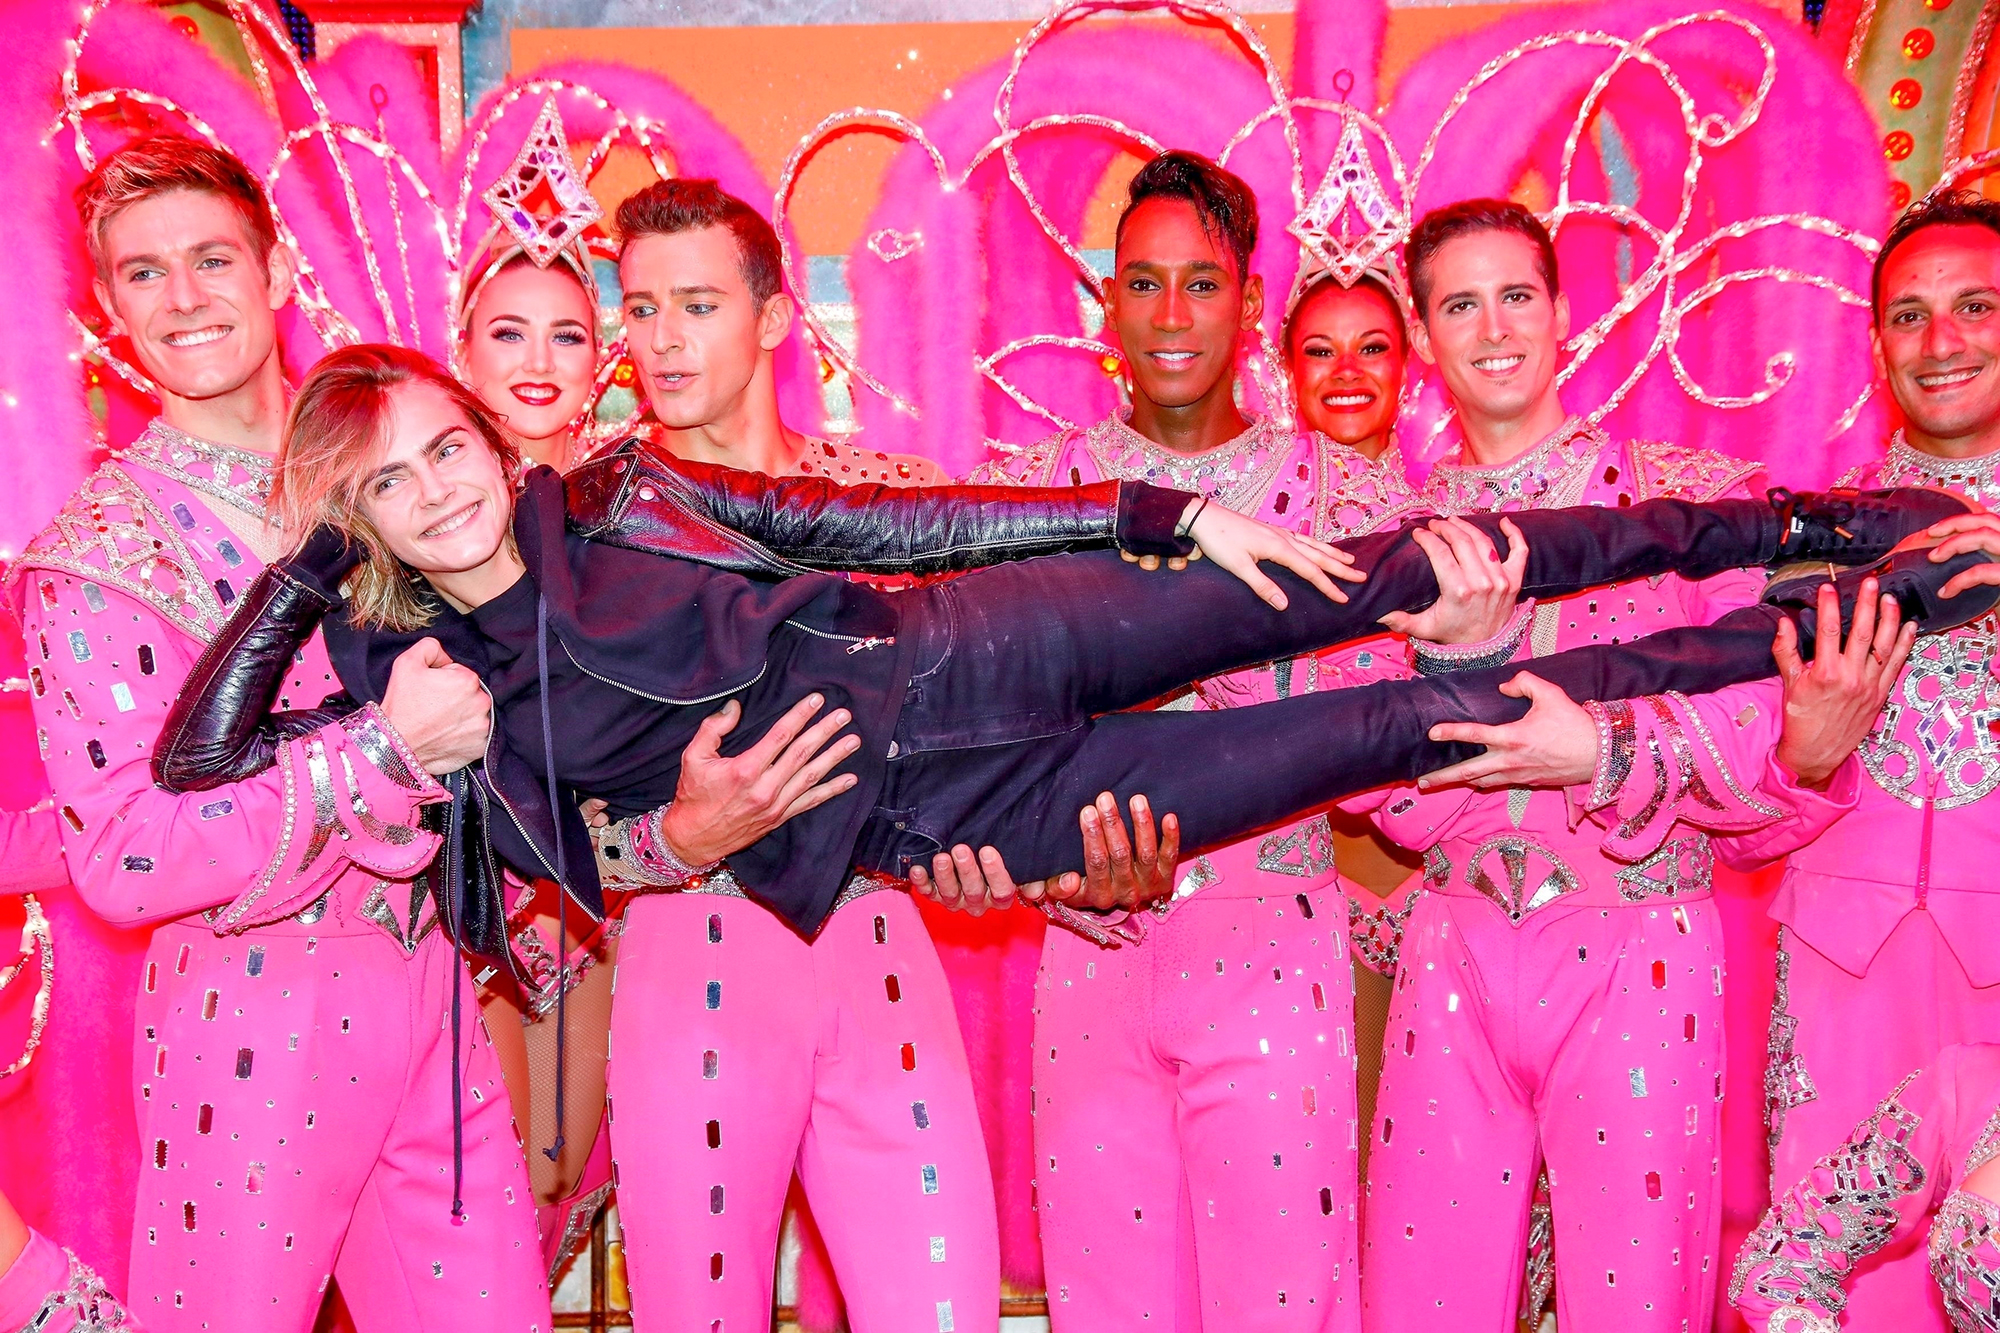 *EXCLUSIVE* Cara Delevingne poses with the Moulin Rouge dancers